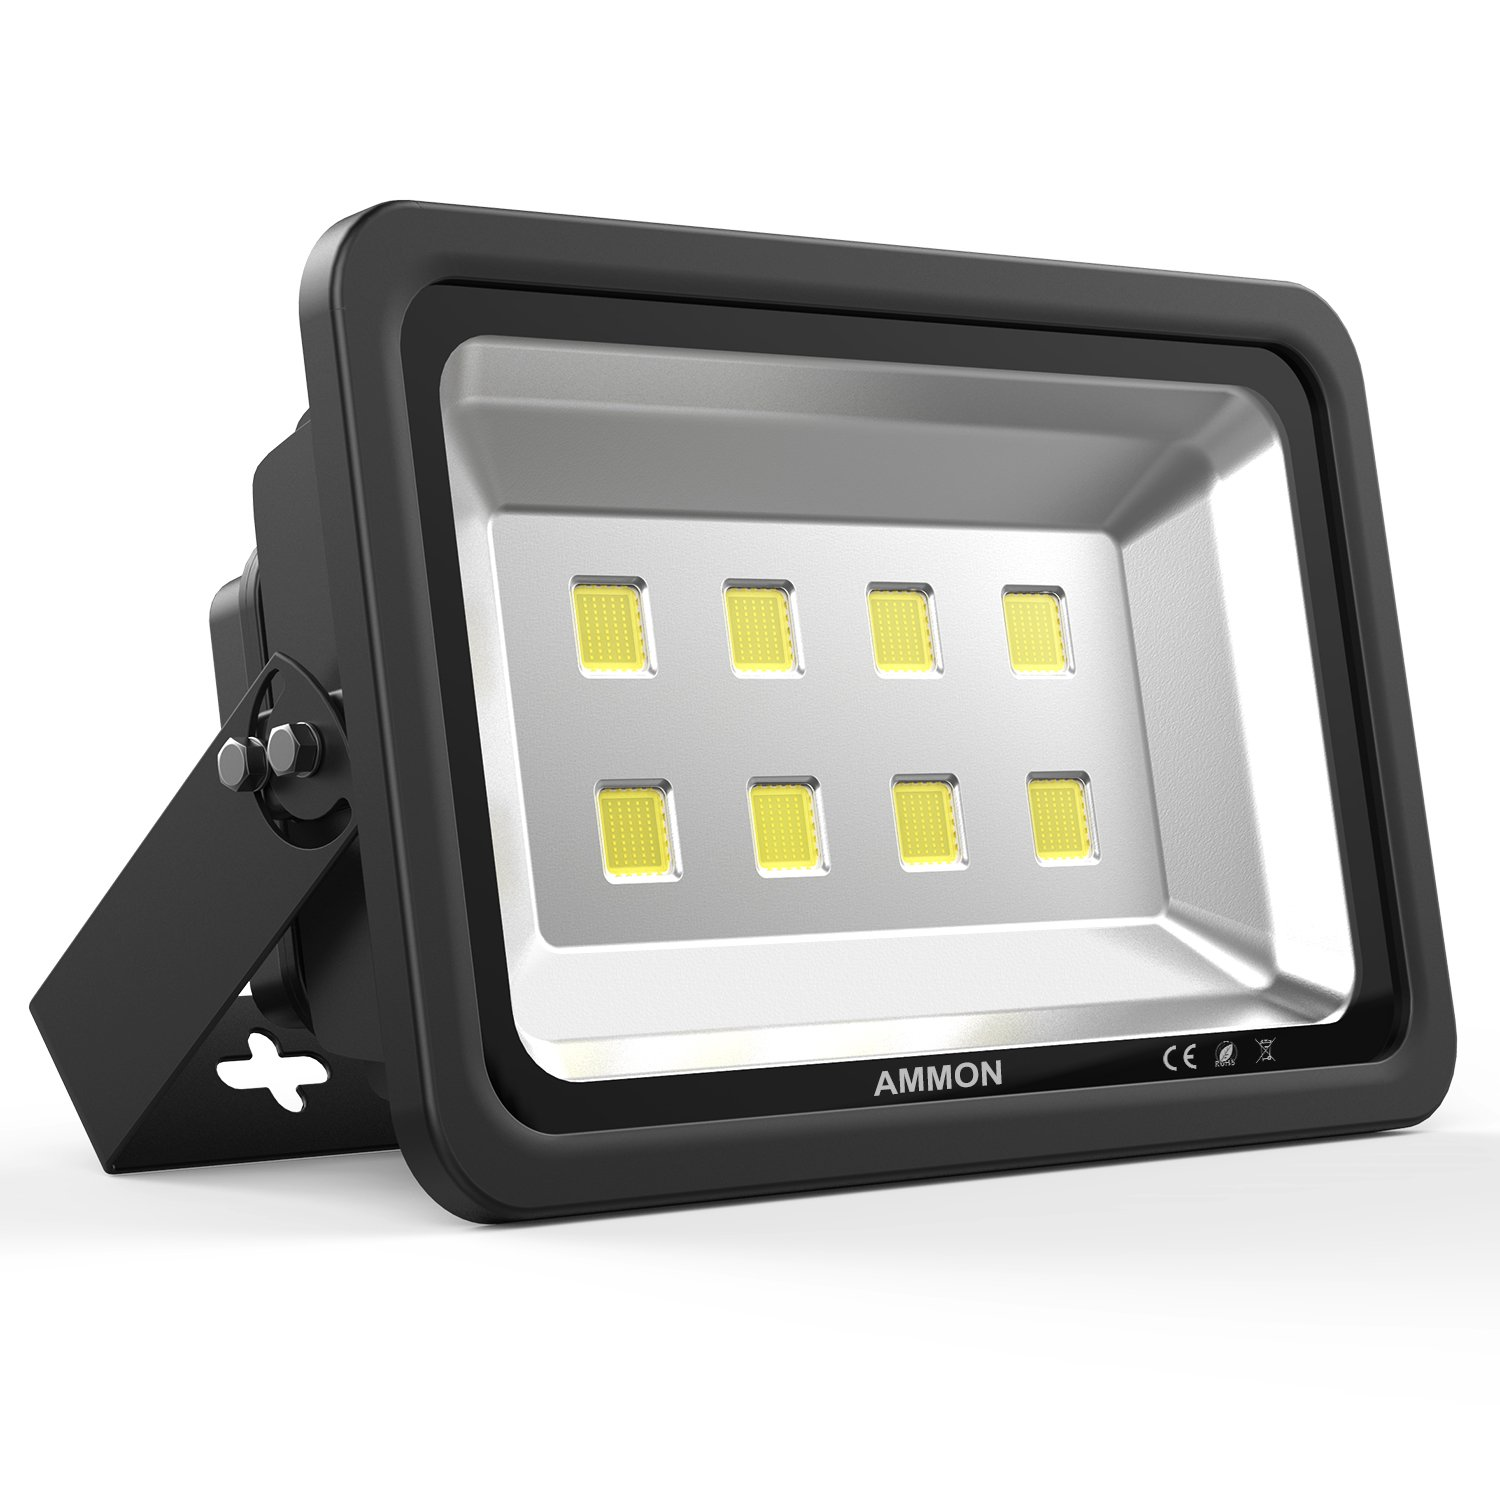 AMMON LED Flood Light, Outdoor Landscape Flood Light Fixture Waterproof Super Bright Security Flood Lamp LED Spotlight for Garden Yard, Party, Playground 400W Black